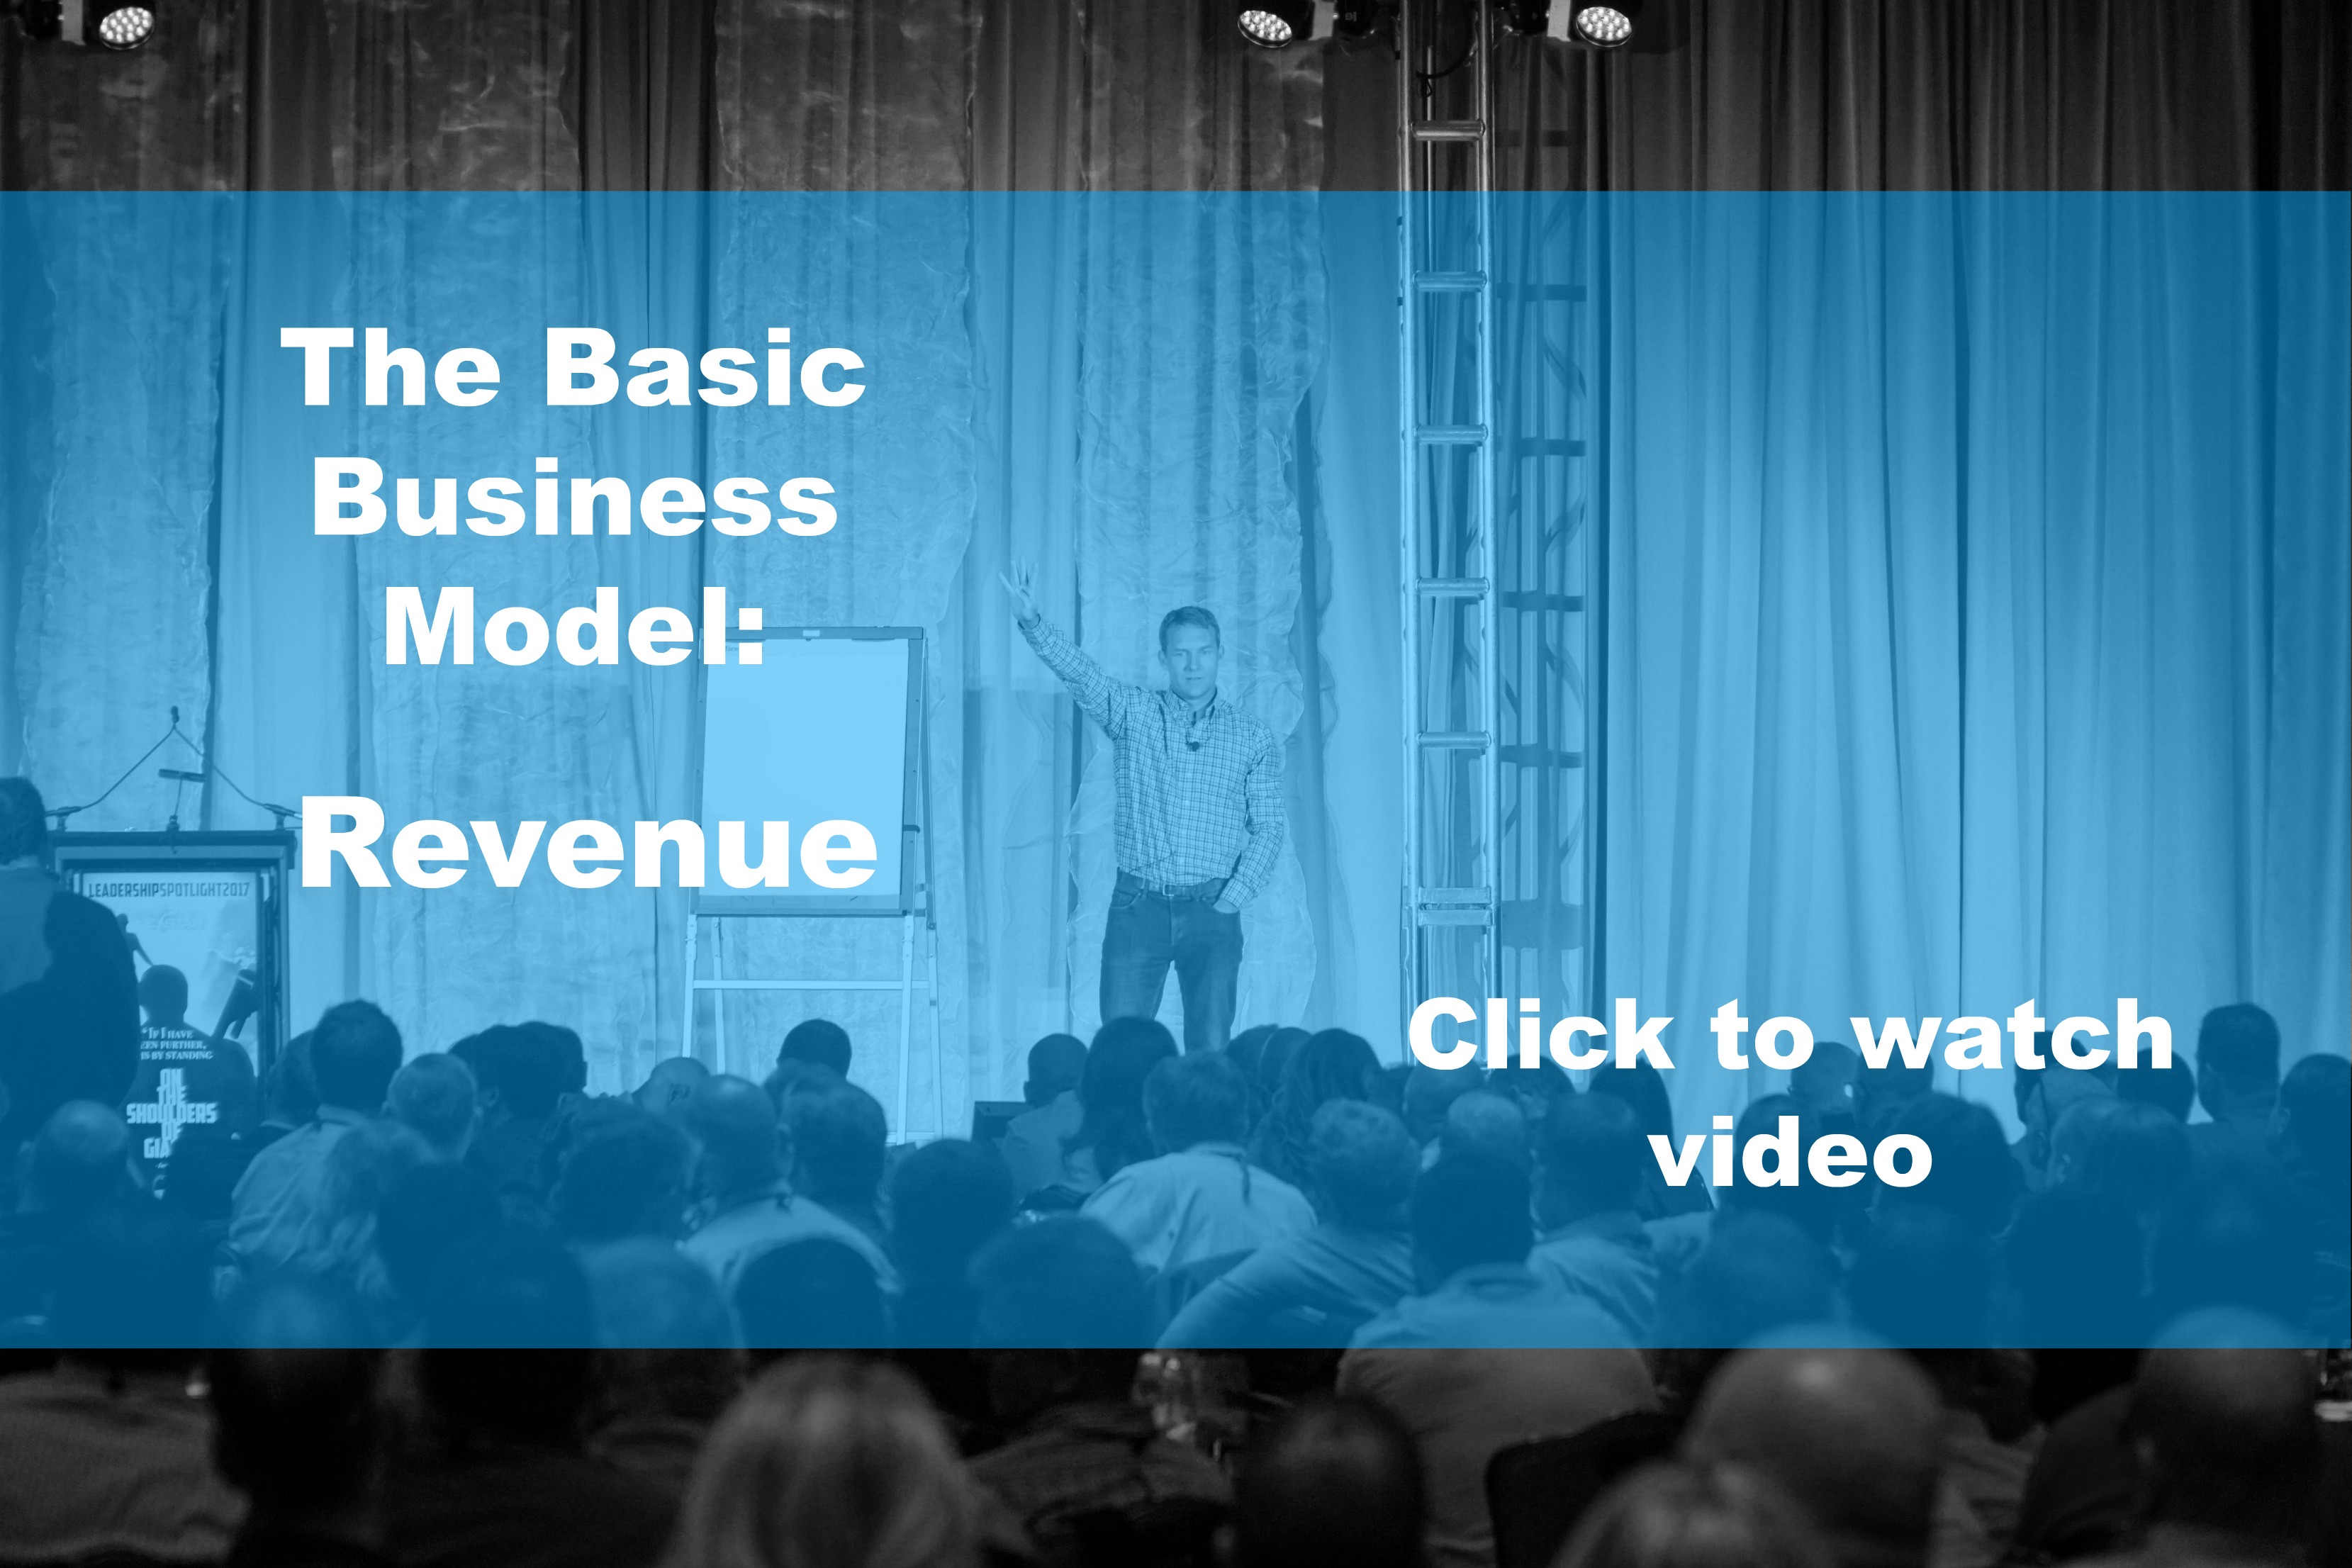 The Basic Business Model- Revenue